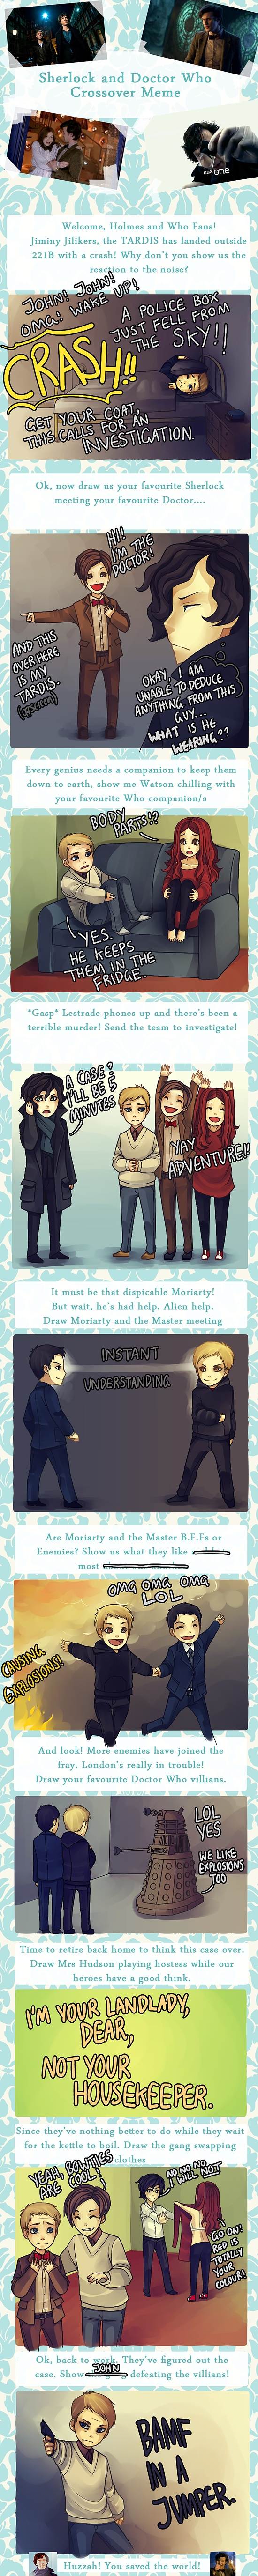 Sherlock+DW Meme by *y0do on deviantART    I love these art memes.... I wish I could draw cause these would be fun.